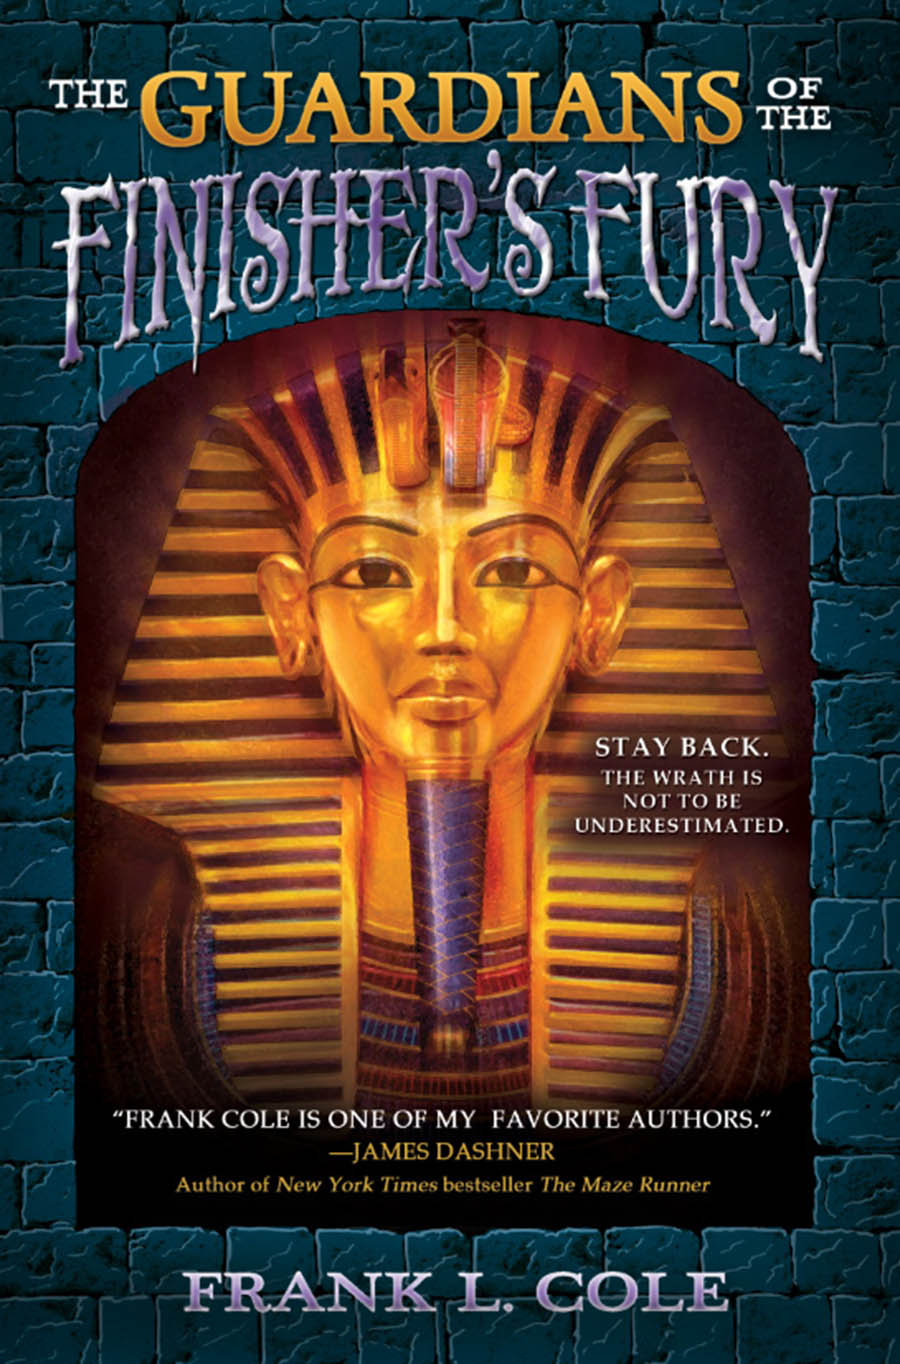 Cover for The Guardians of the Finishers Fury; an image of an Egyptian sarcophagus.